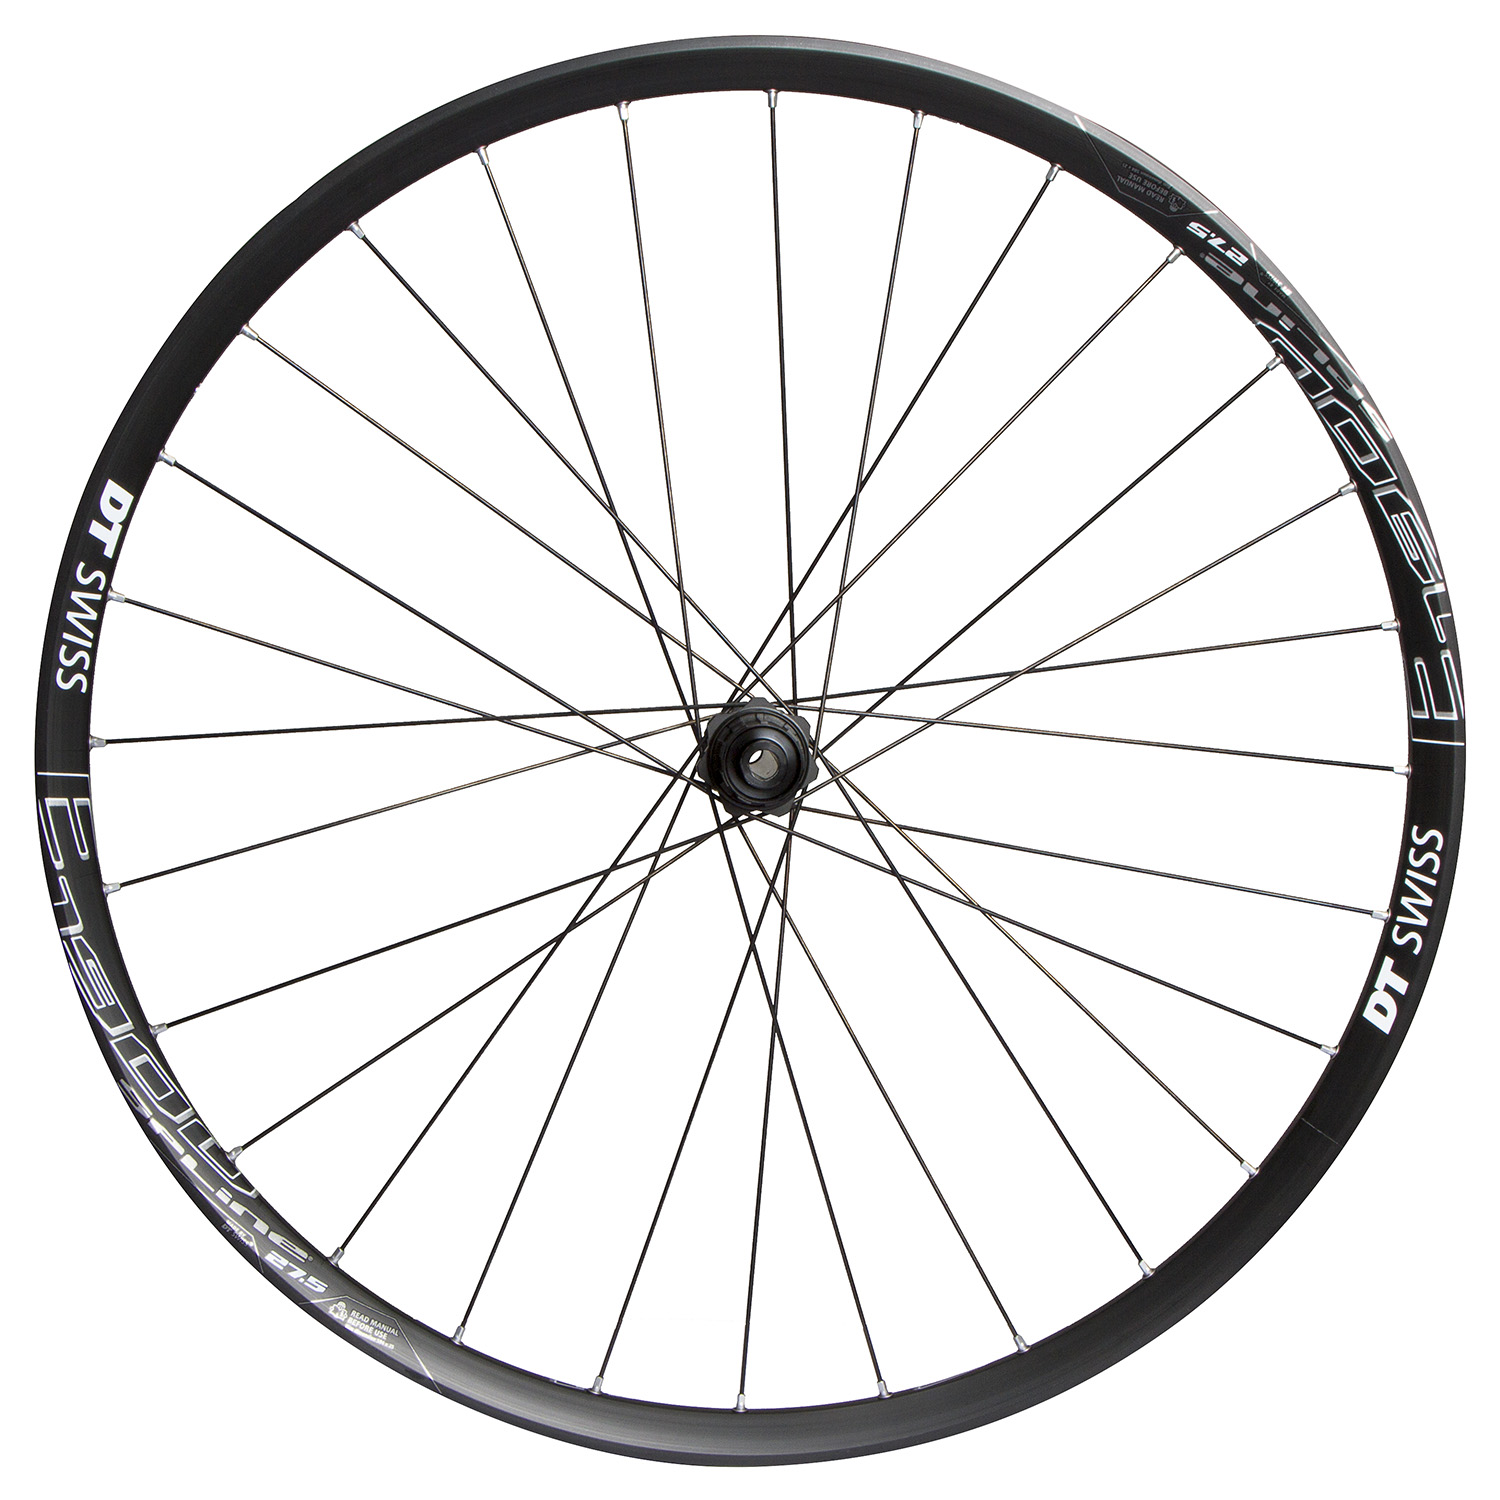 dt swiss wheel e 1900 spline rear 27 5 inches 12x148 mm ta boost 106 mm Shells questions about this article